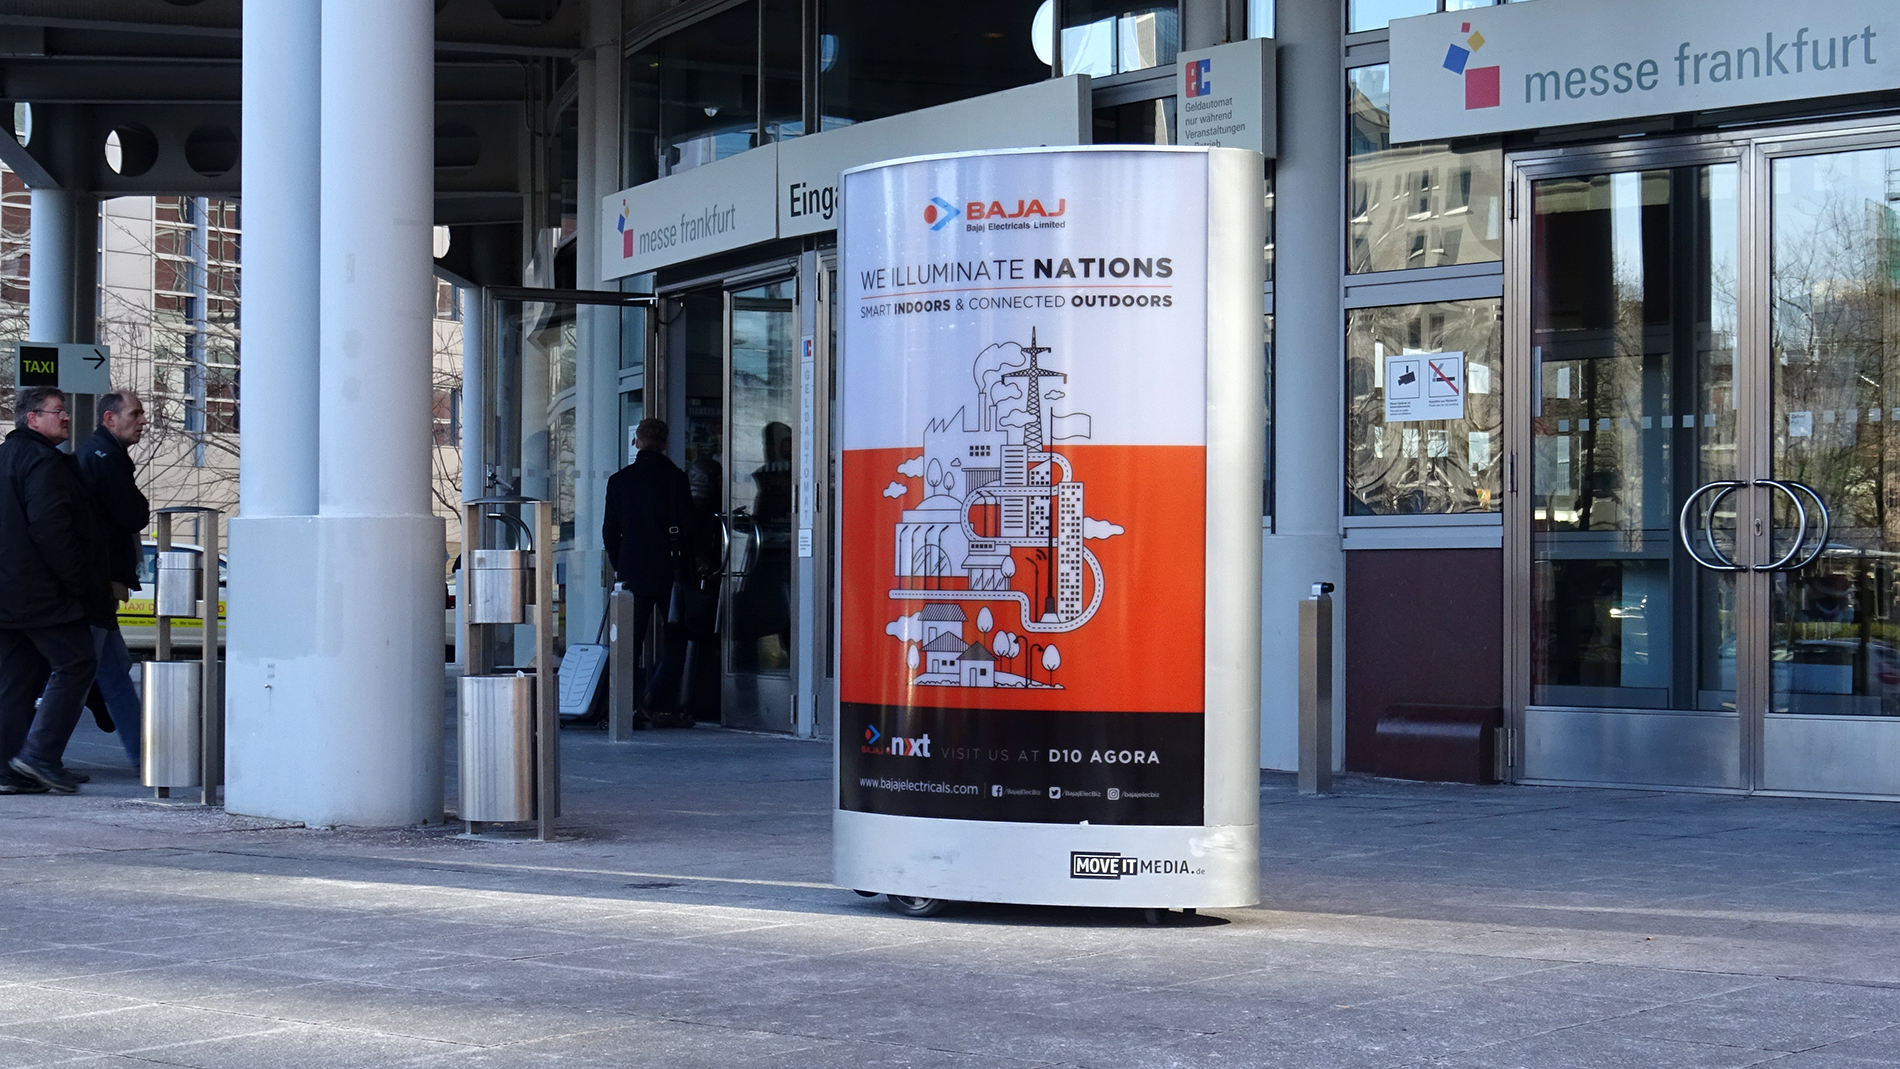 messefrankfurt-advertising-poster-mover